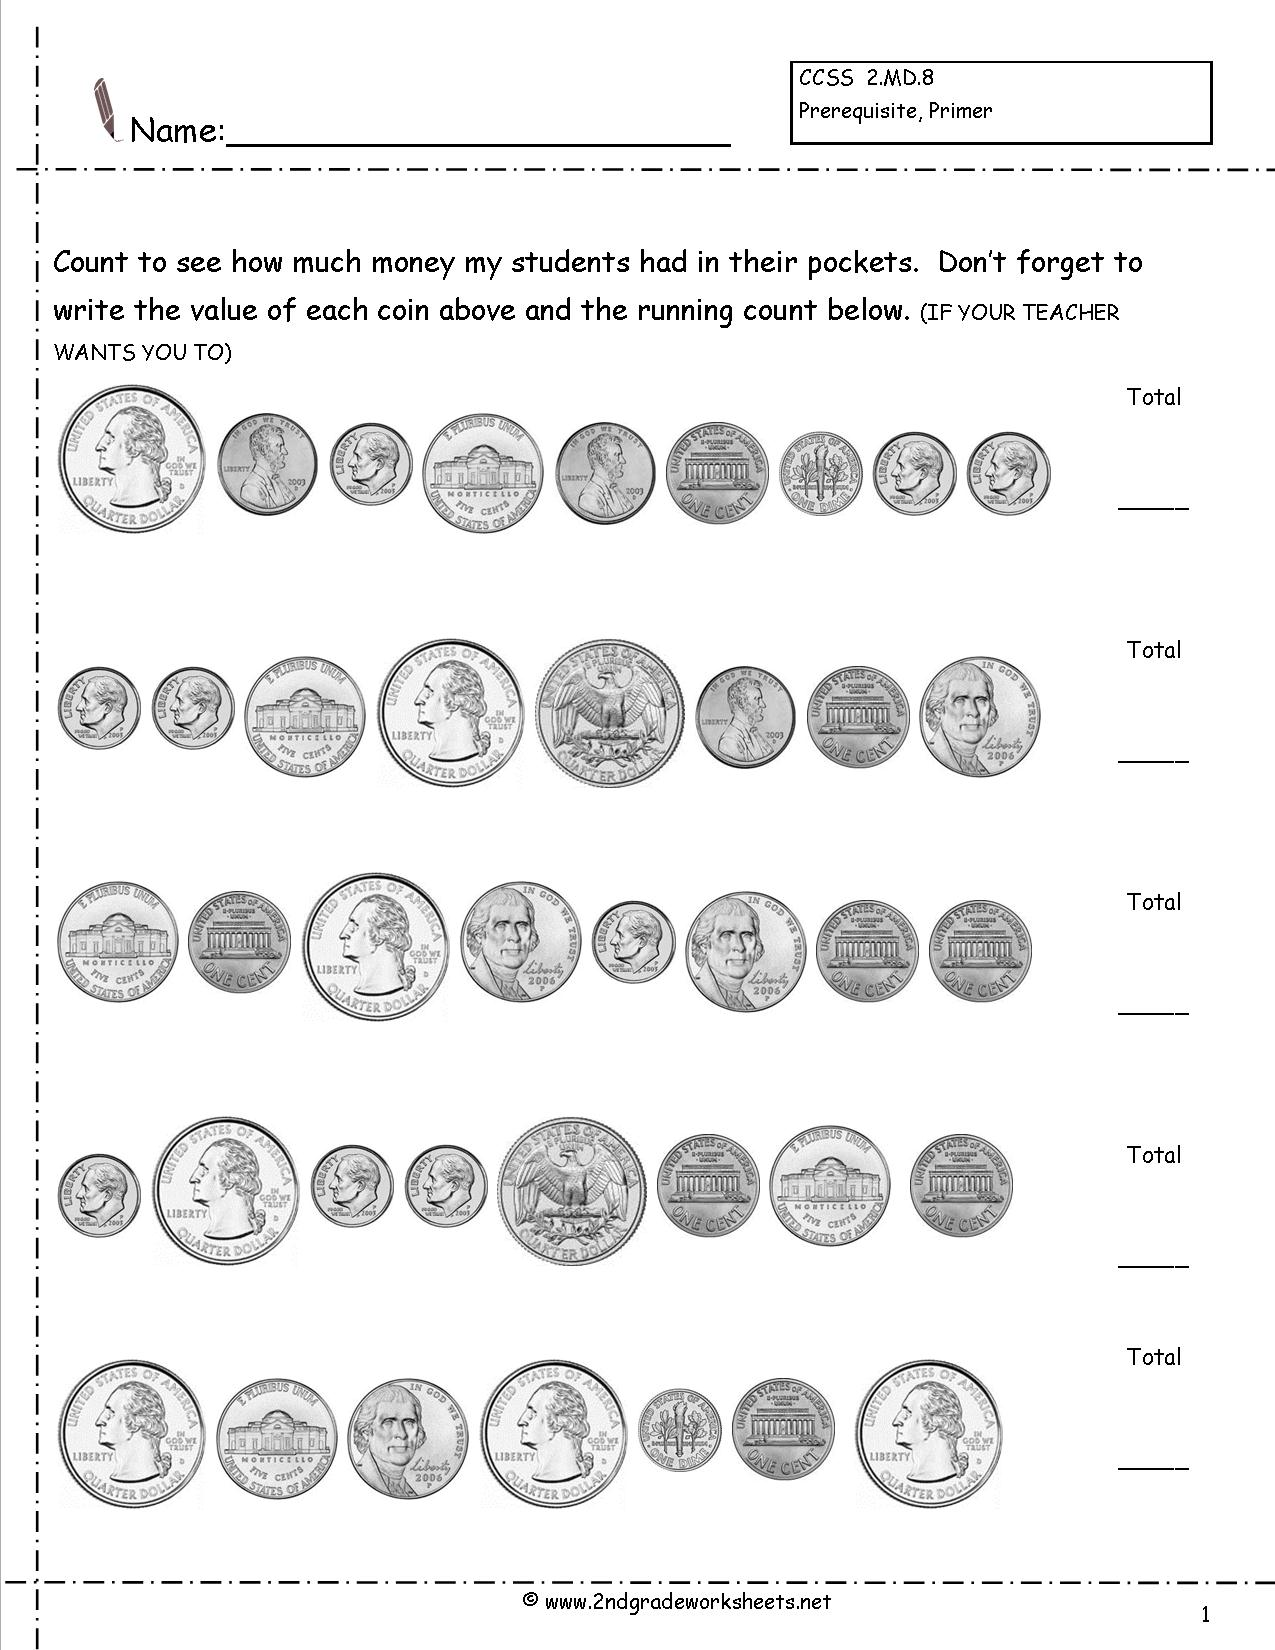 Counting Bills And Coins Worksheets For 2nd Grade Medal